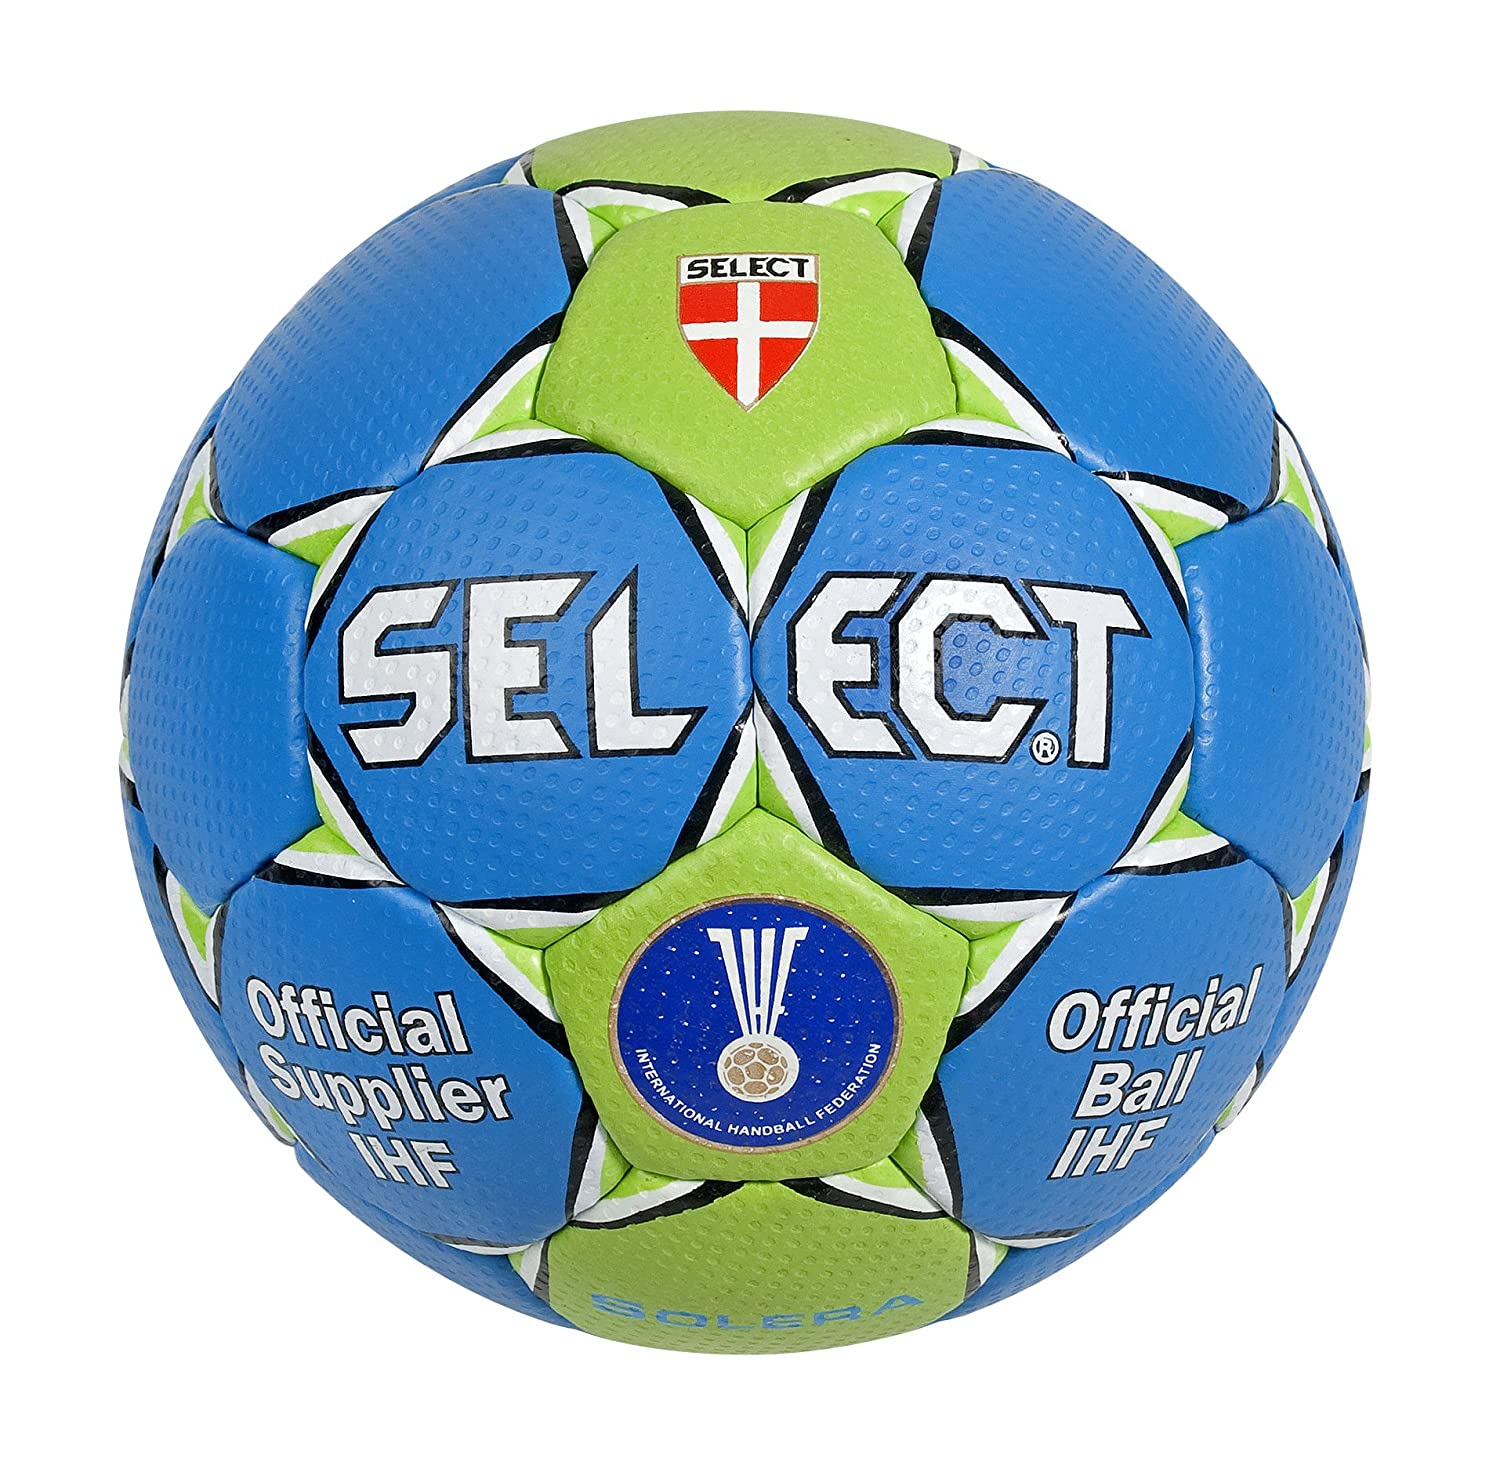 SELECT Trainingsball Solera - Pelota de Balonmano, Color Azul ...